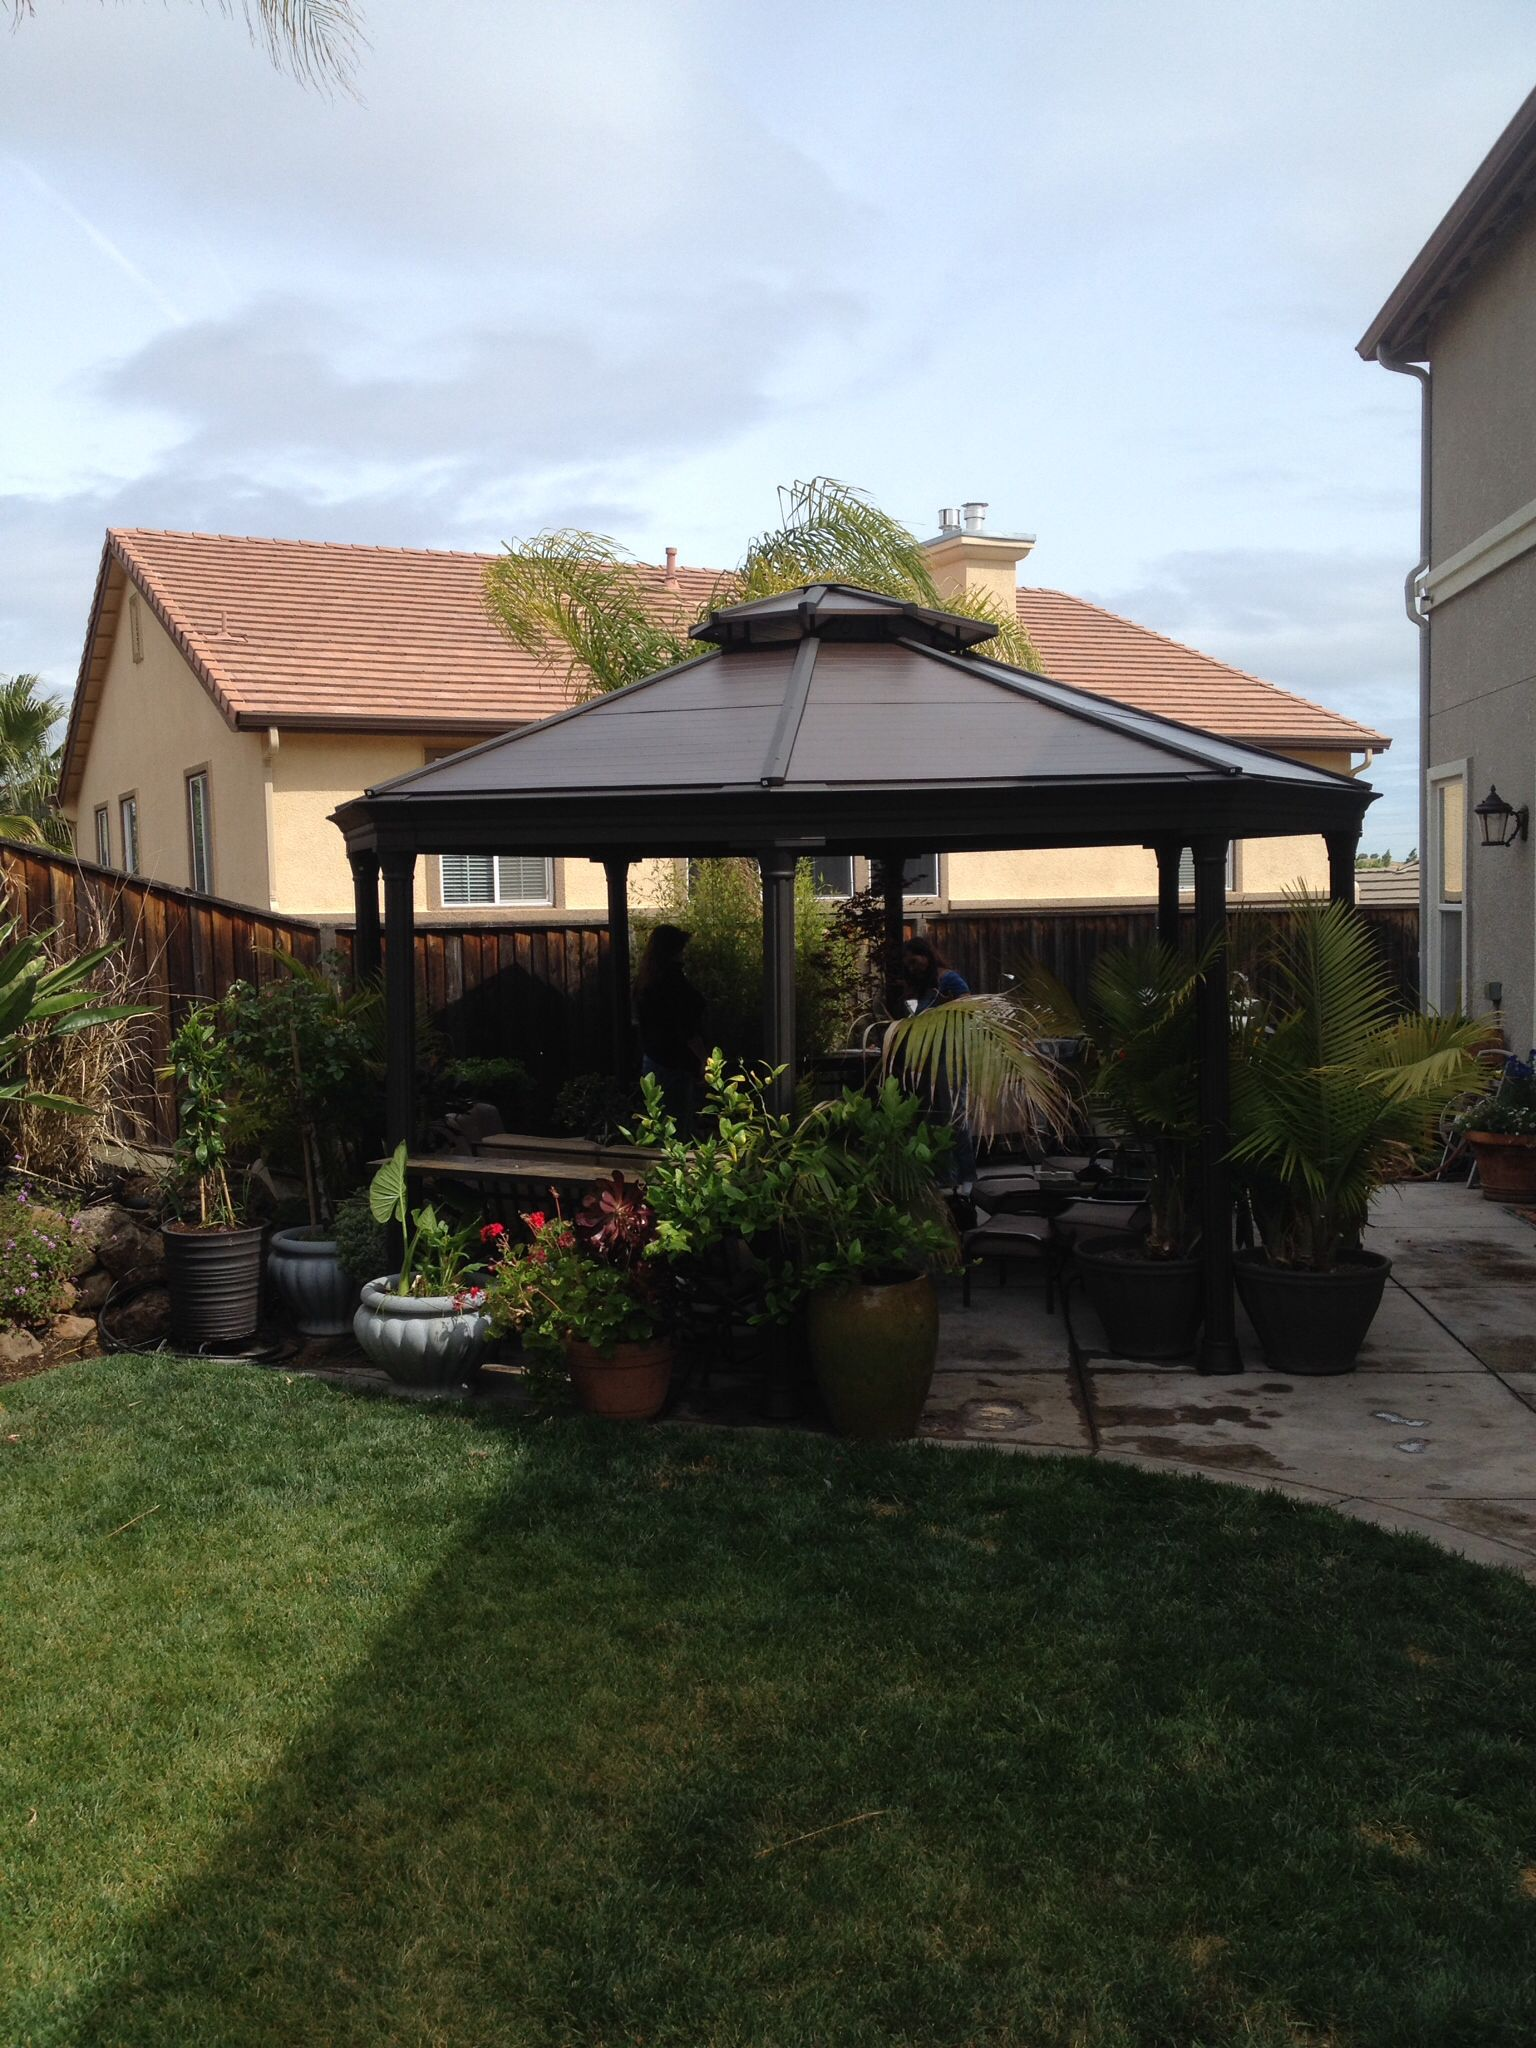 Costco Gazebo in my garden in 2019 | Backyard, Portable ... on My Garden Outdoor Living id=96927